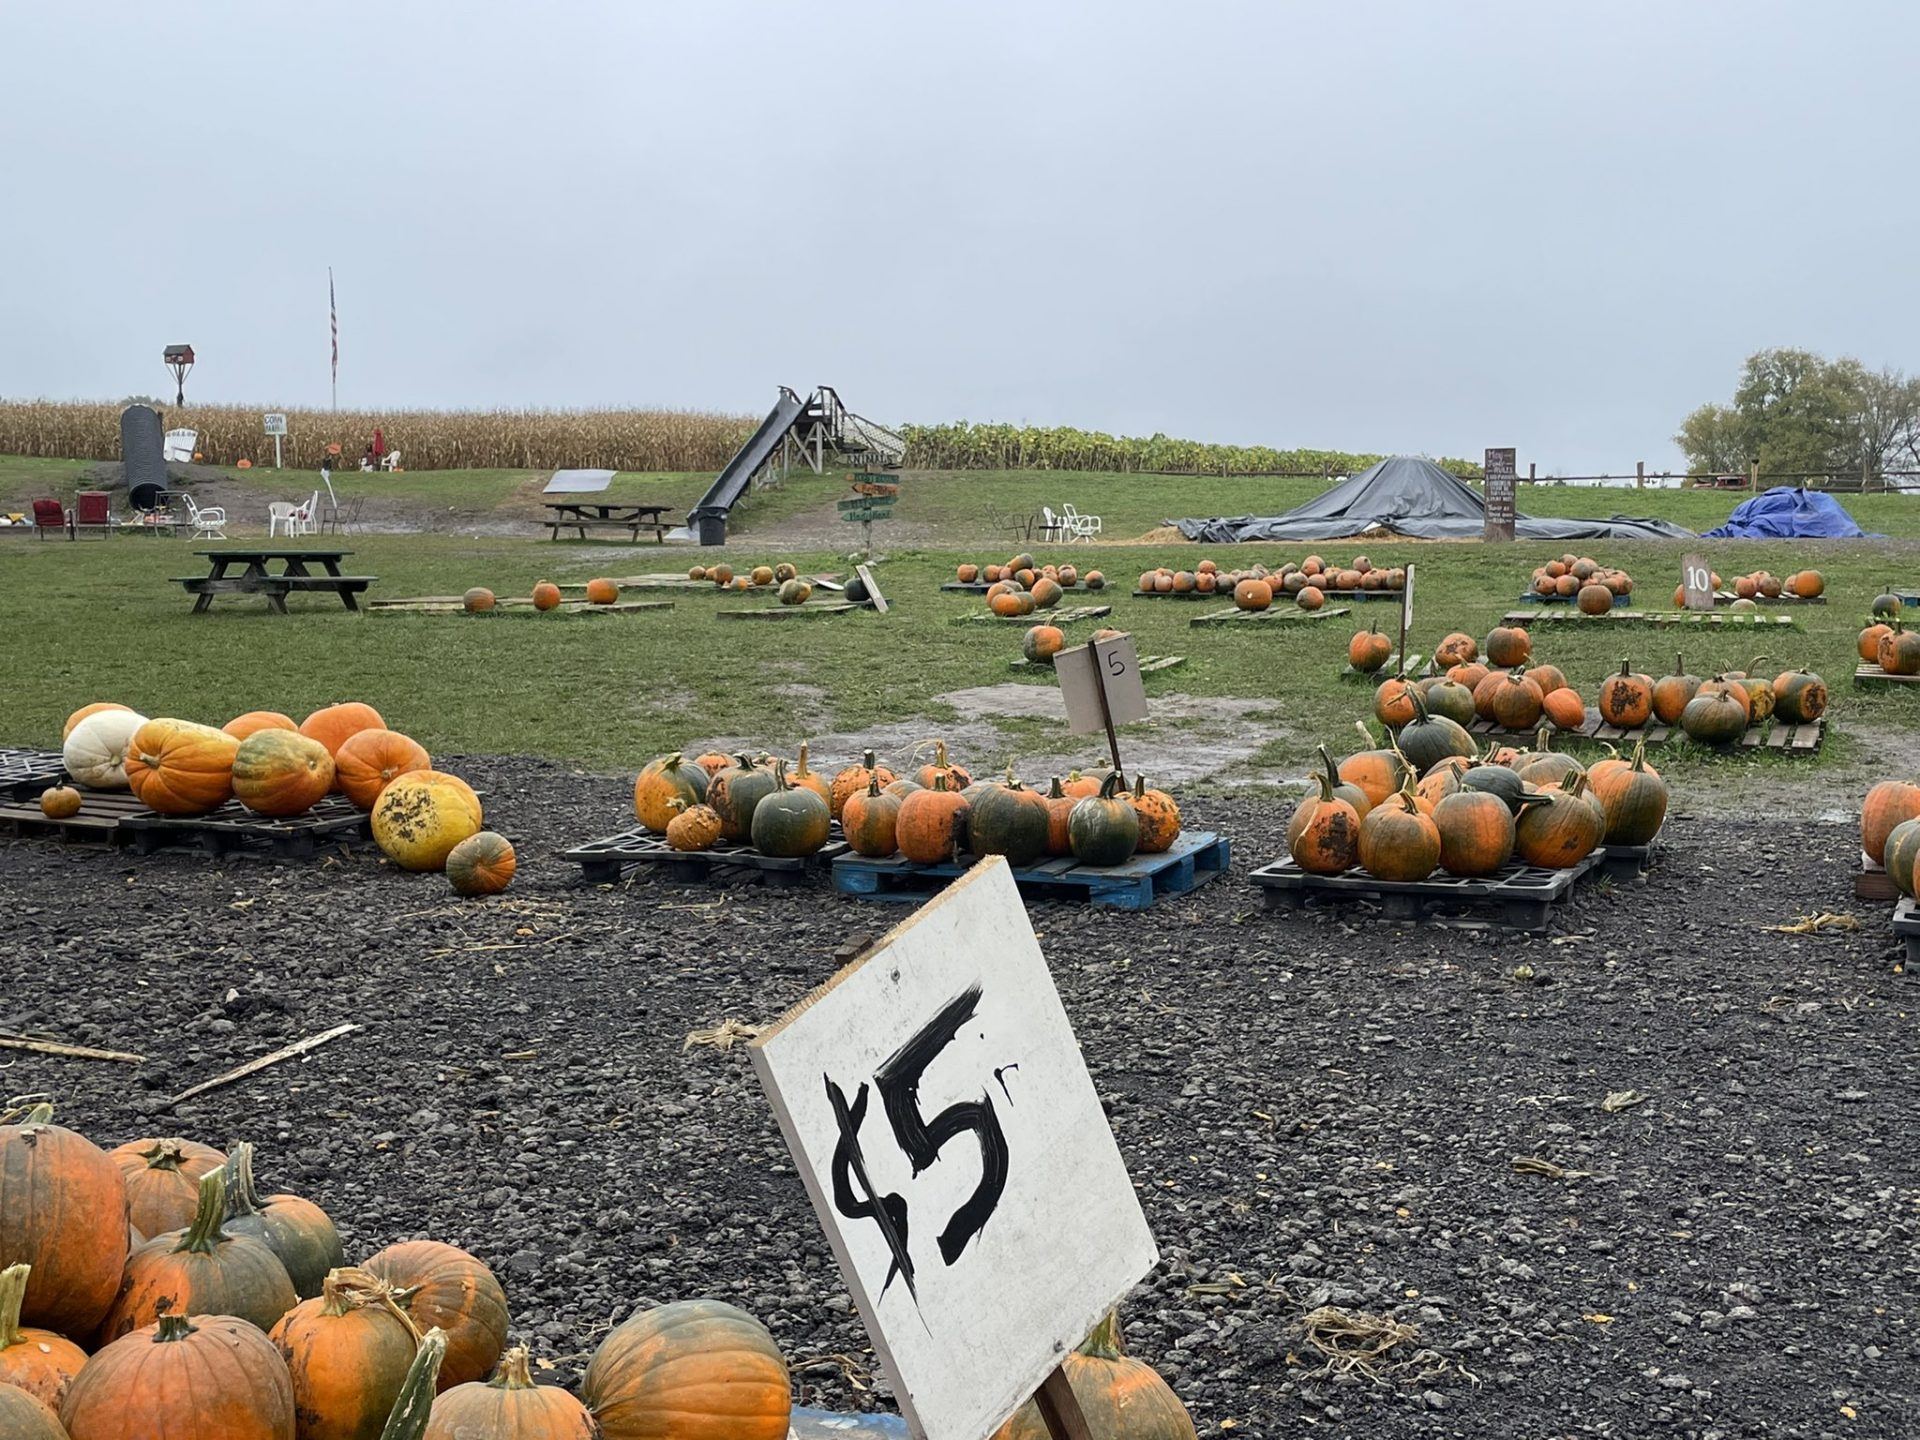 Business is booming despite the volunteer shortages at the Pumpkin Hollow